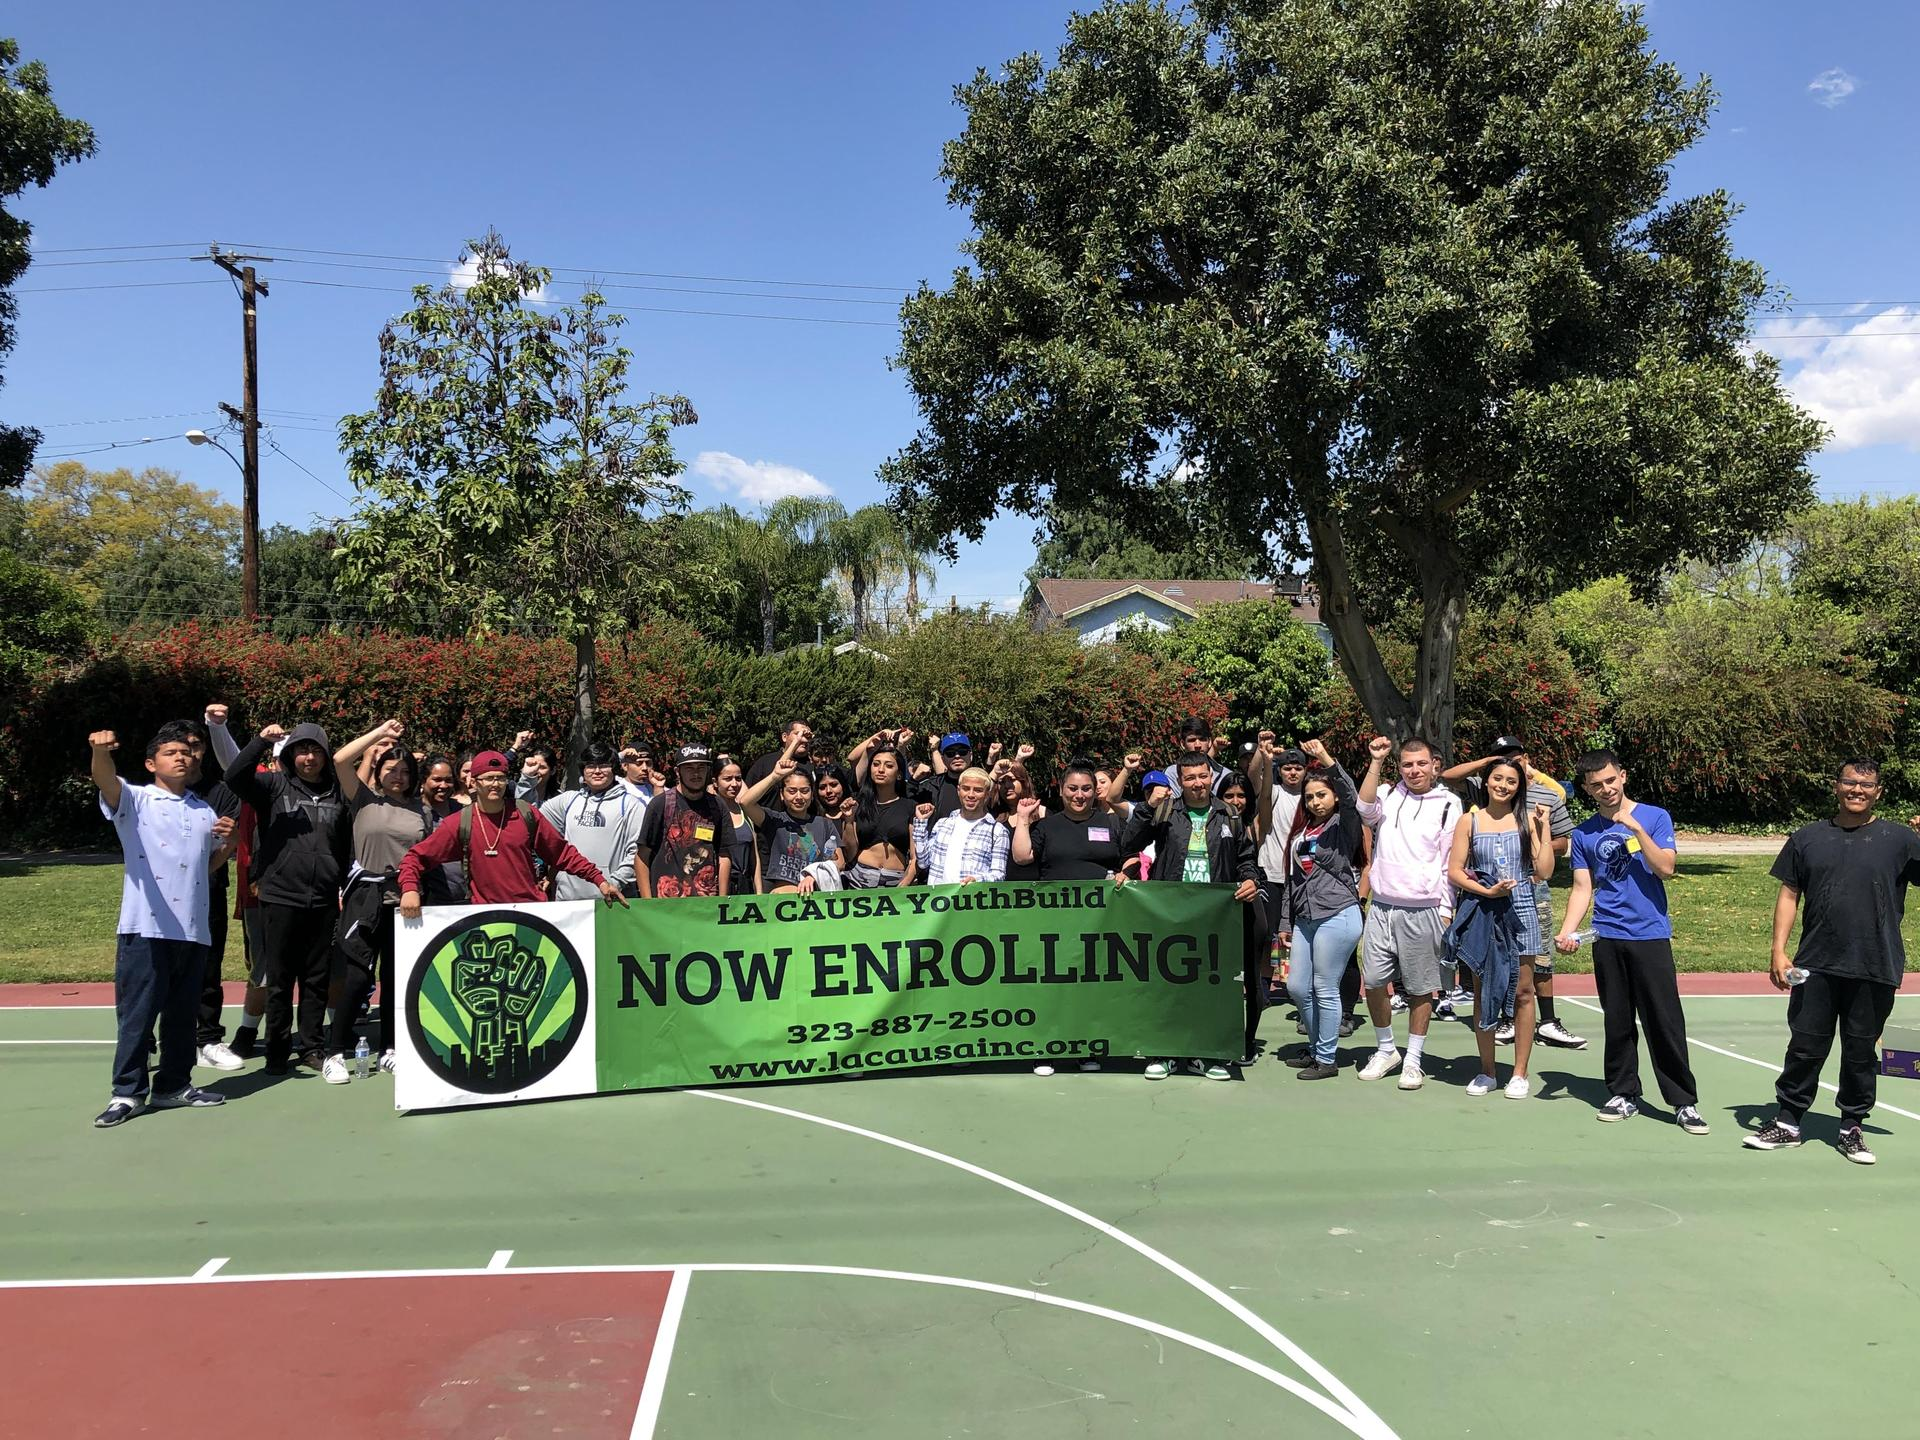 LA CAUSA Students pose with an enrollment banner during Mental Toughness